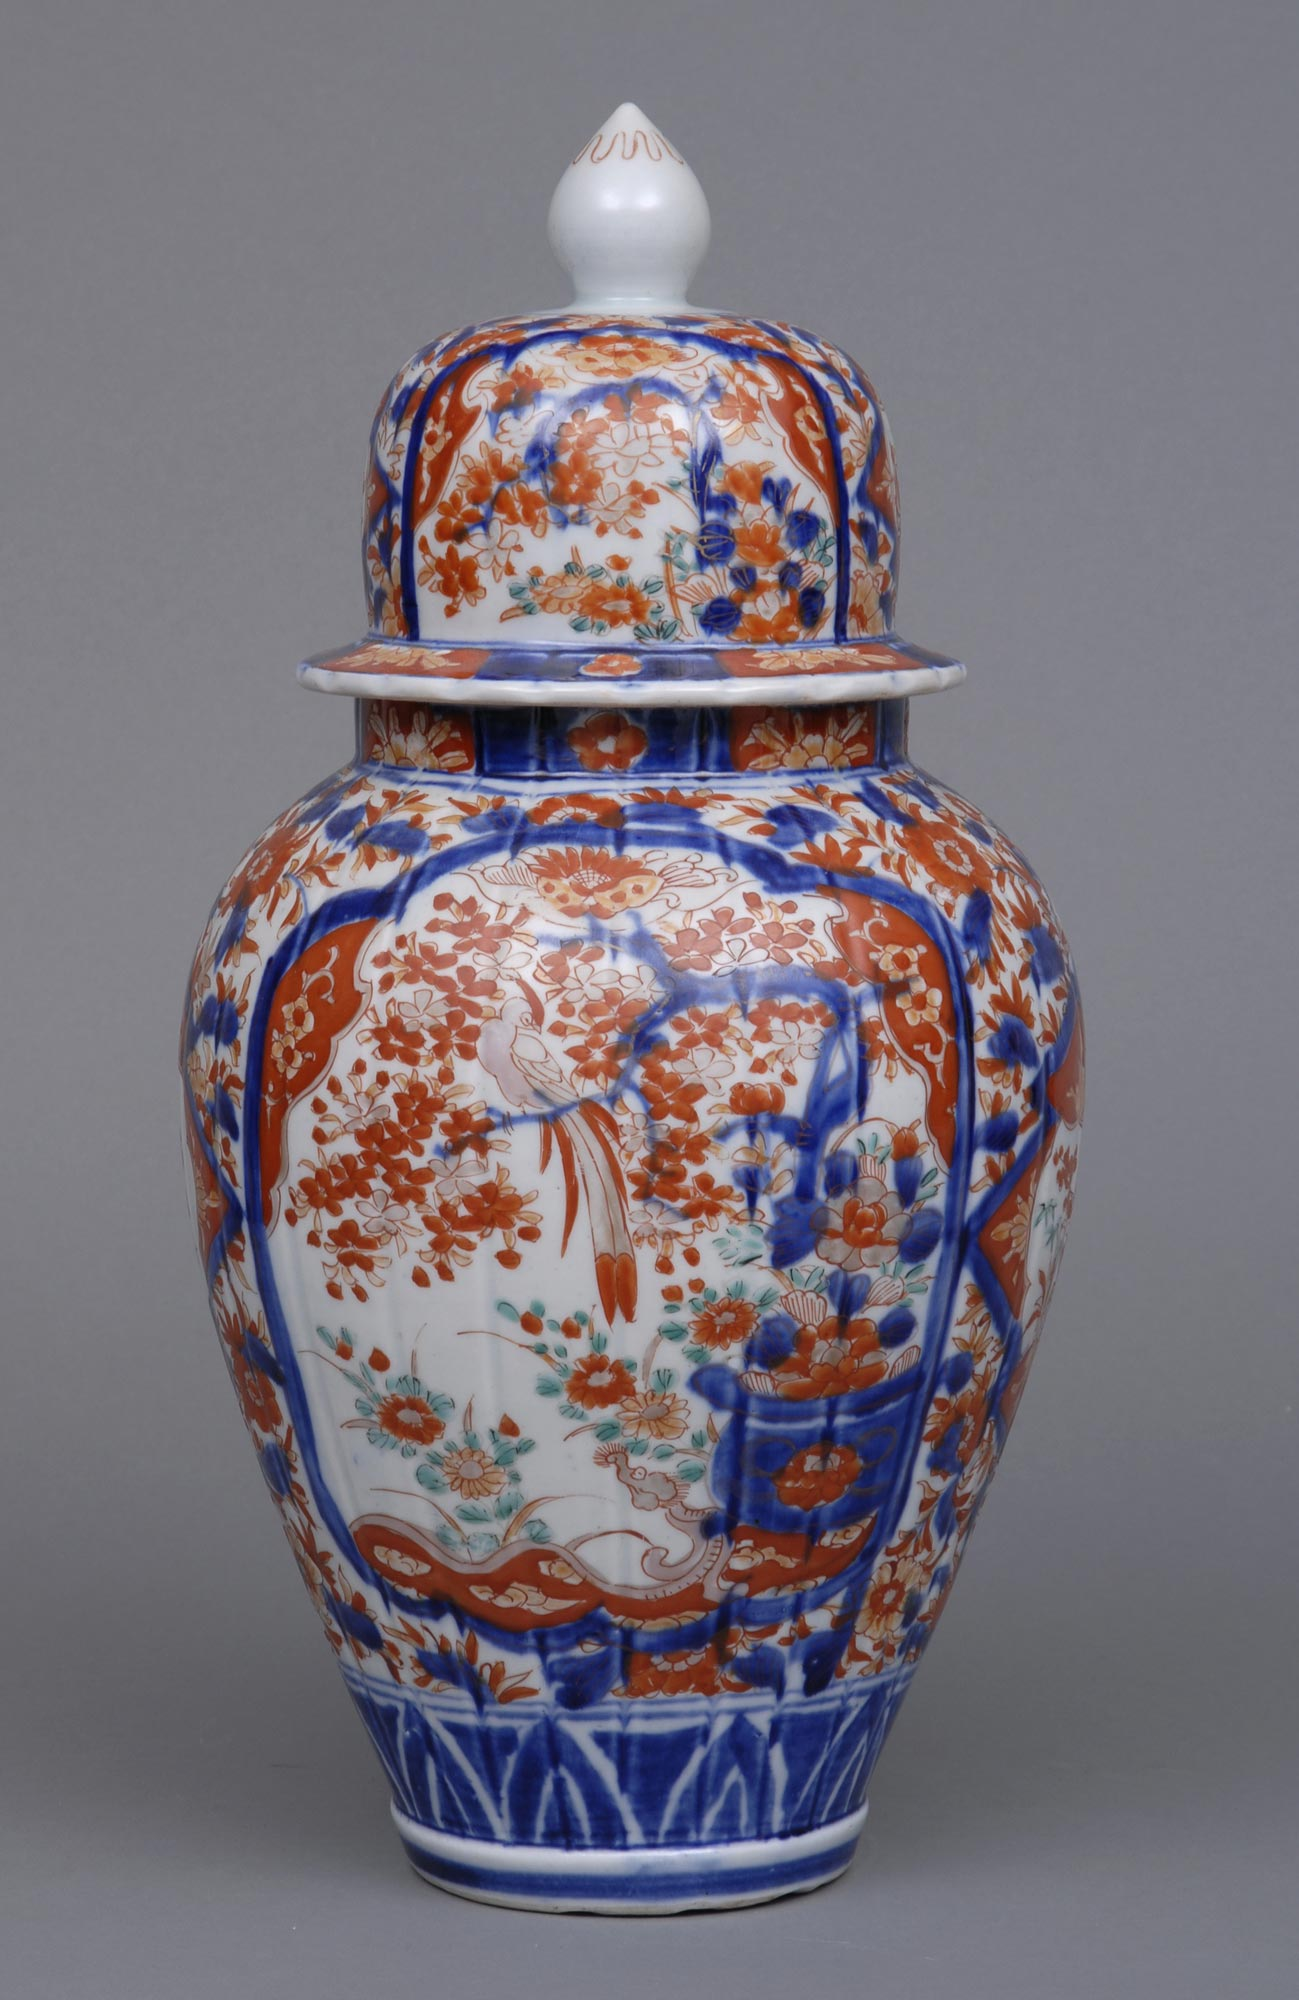 Base Cabinets Early Japanese Imari Vase And Lid, Circa 1720